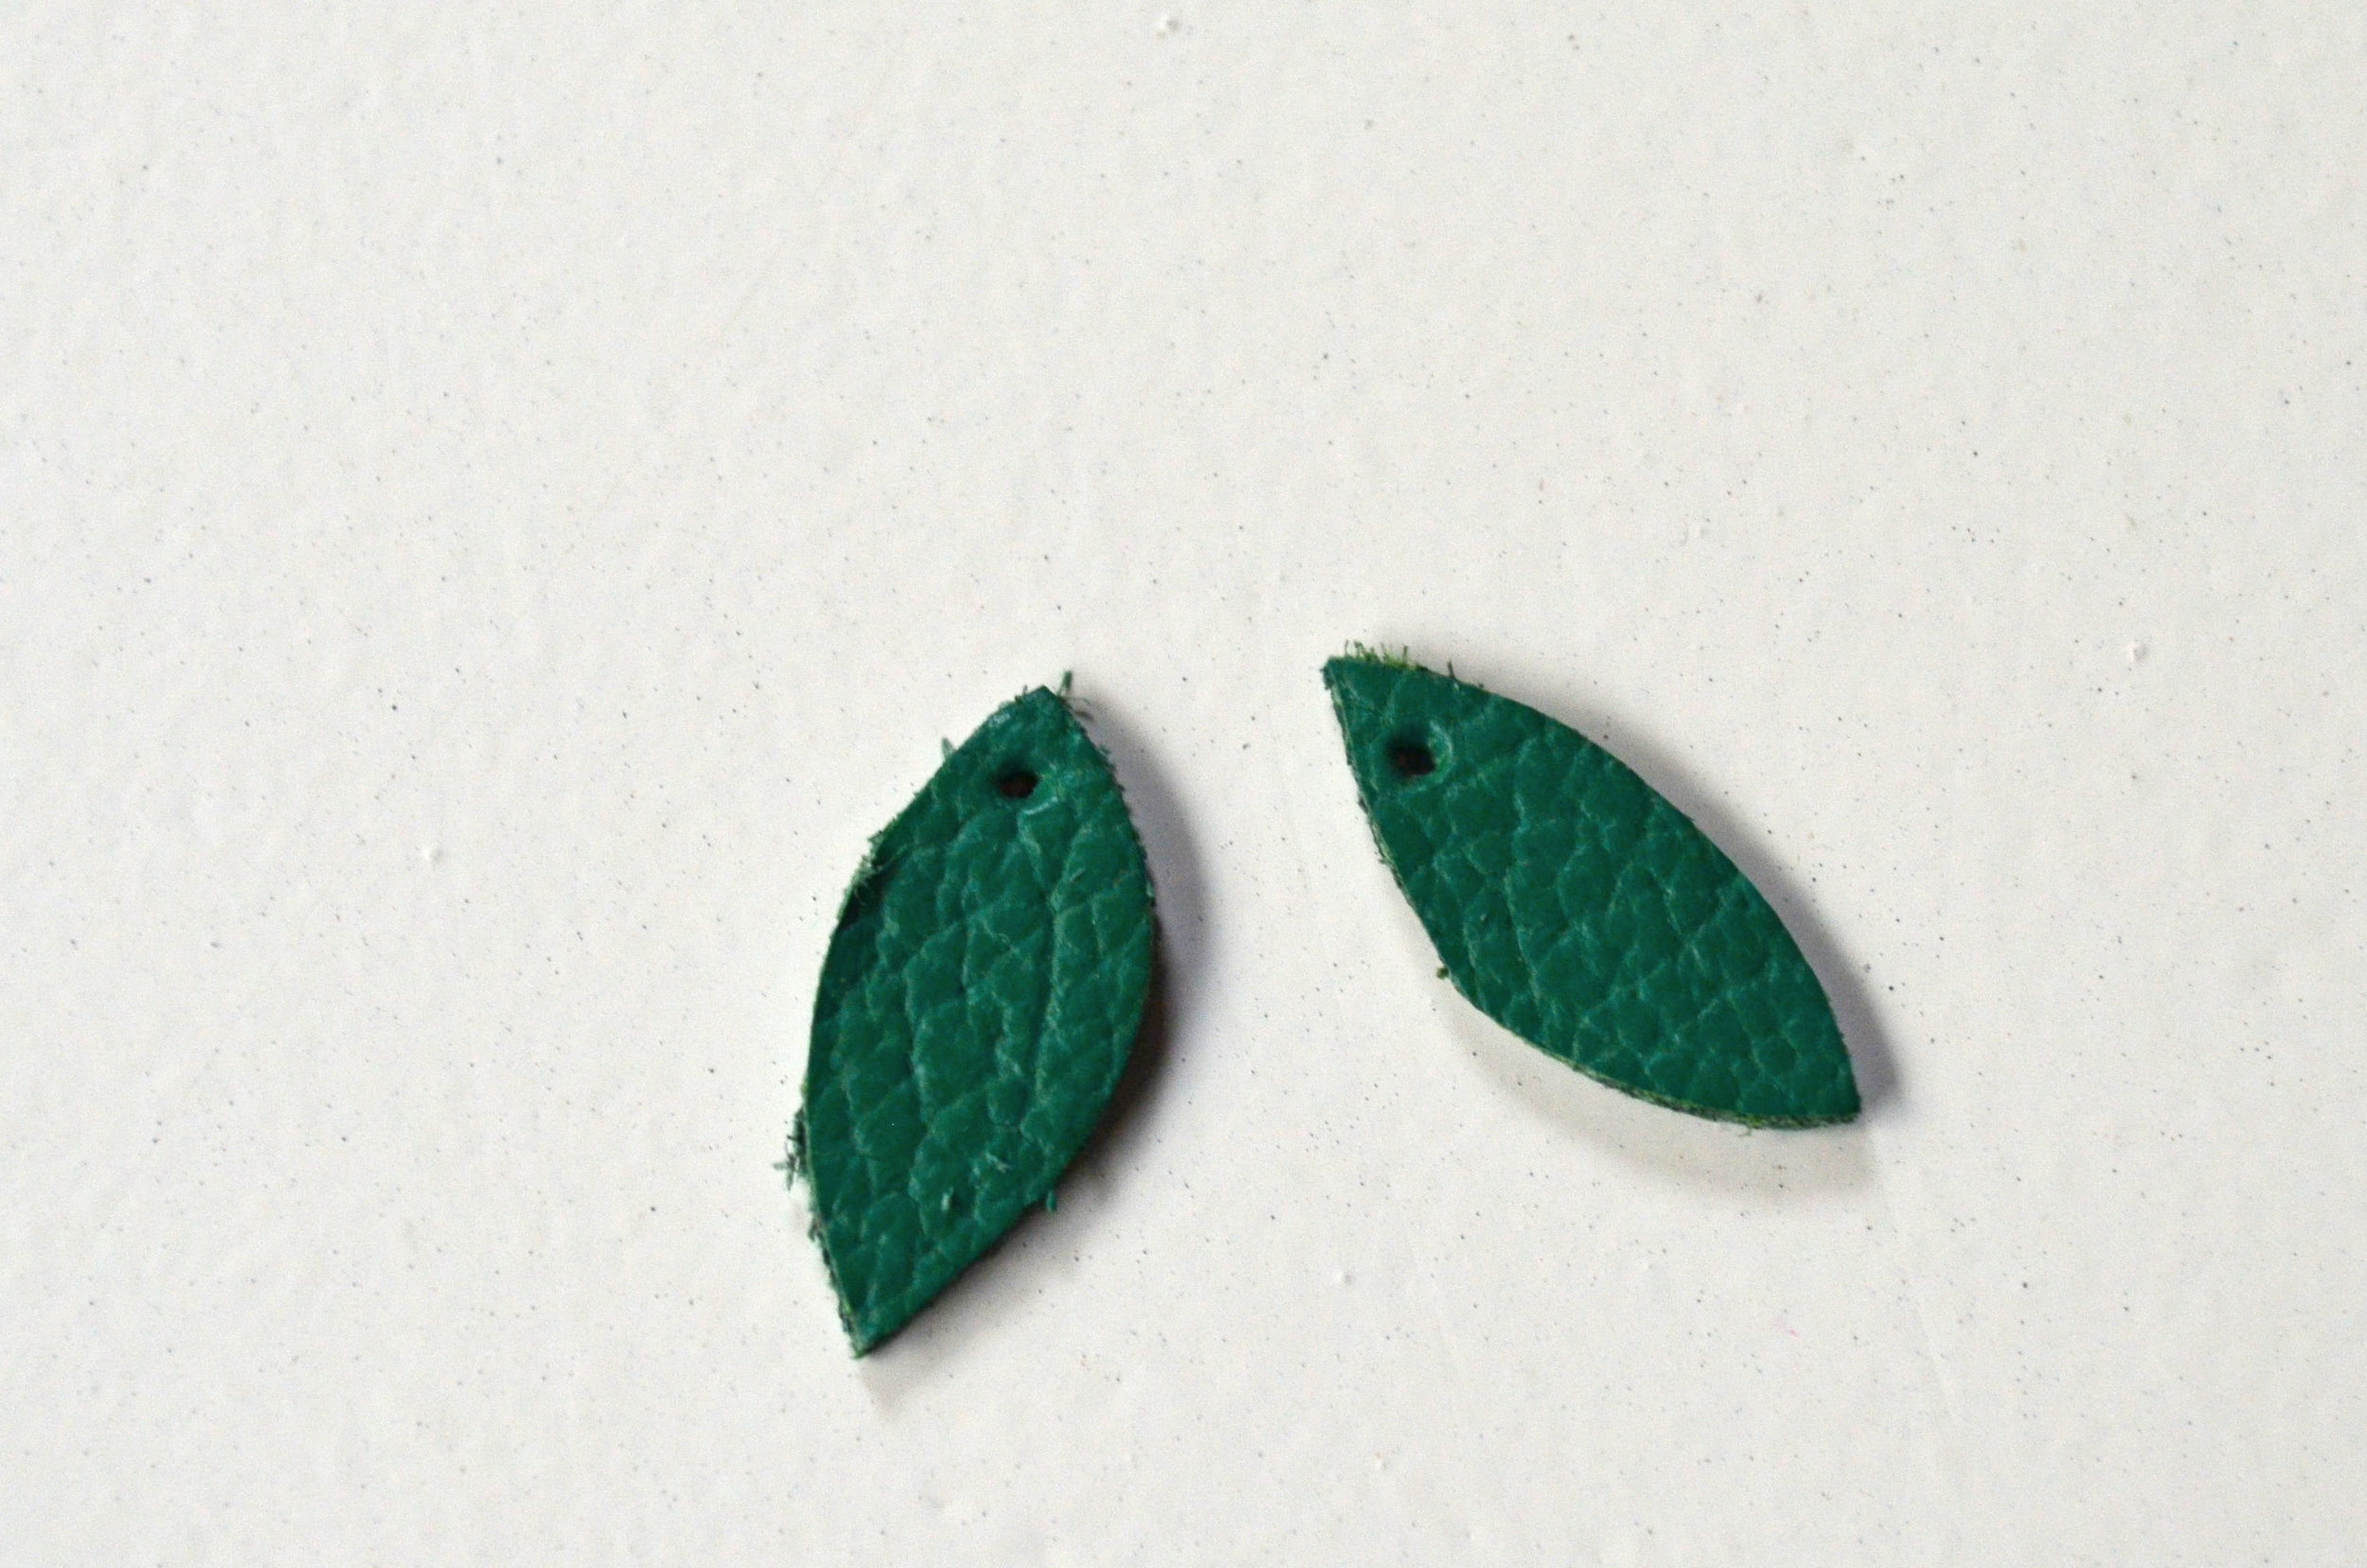 "From the leather cut two leaf shapes about ¾"" in length. Using an awl (a larger safety pin may also work) poke a hole in each leaf large enough to attach a jump ring."